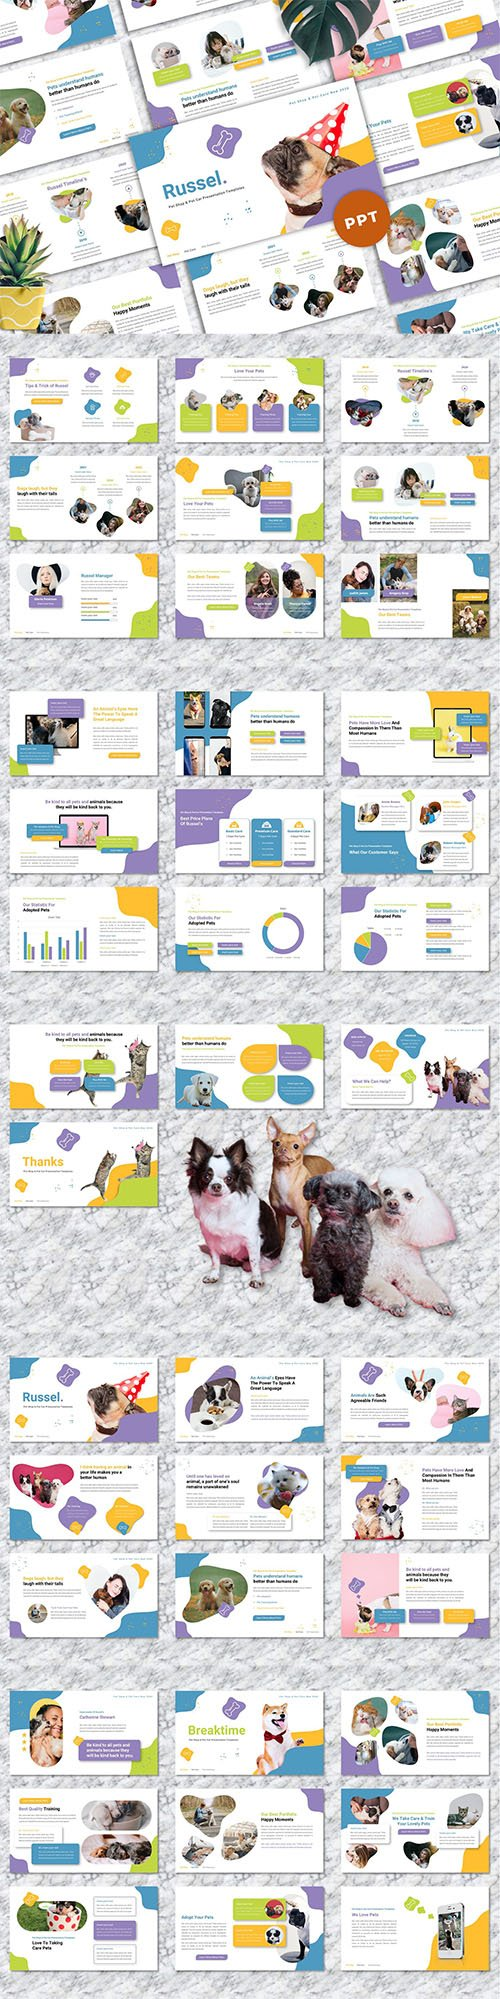 Russel - Pet Care Powerpoint Templates